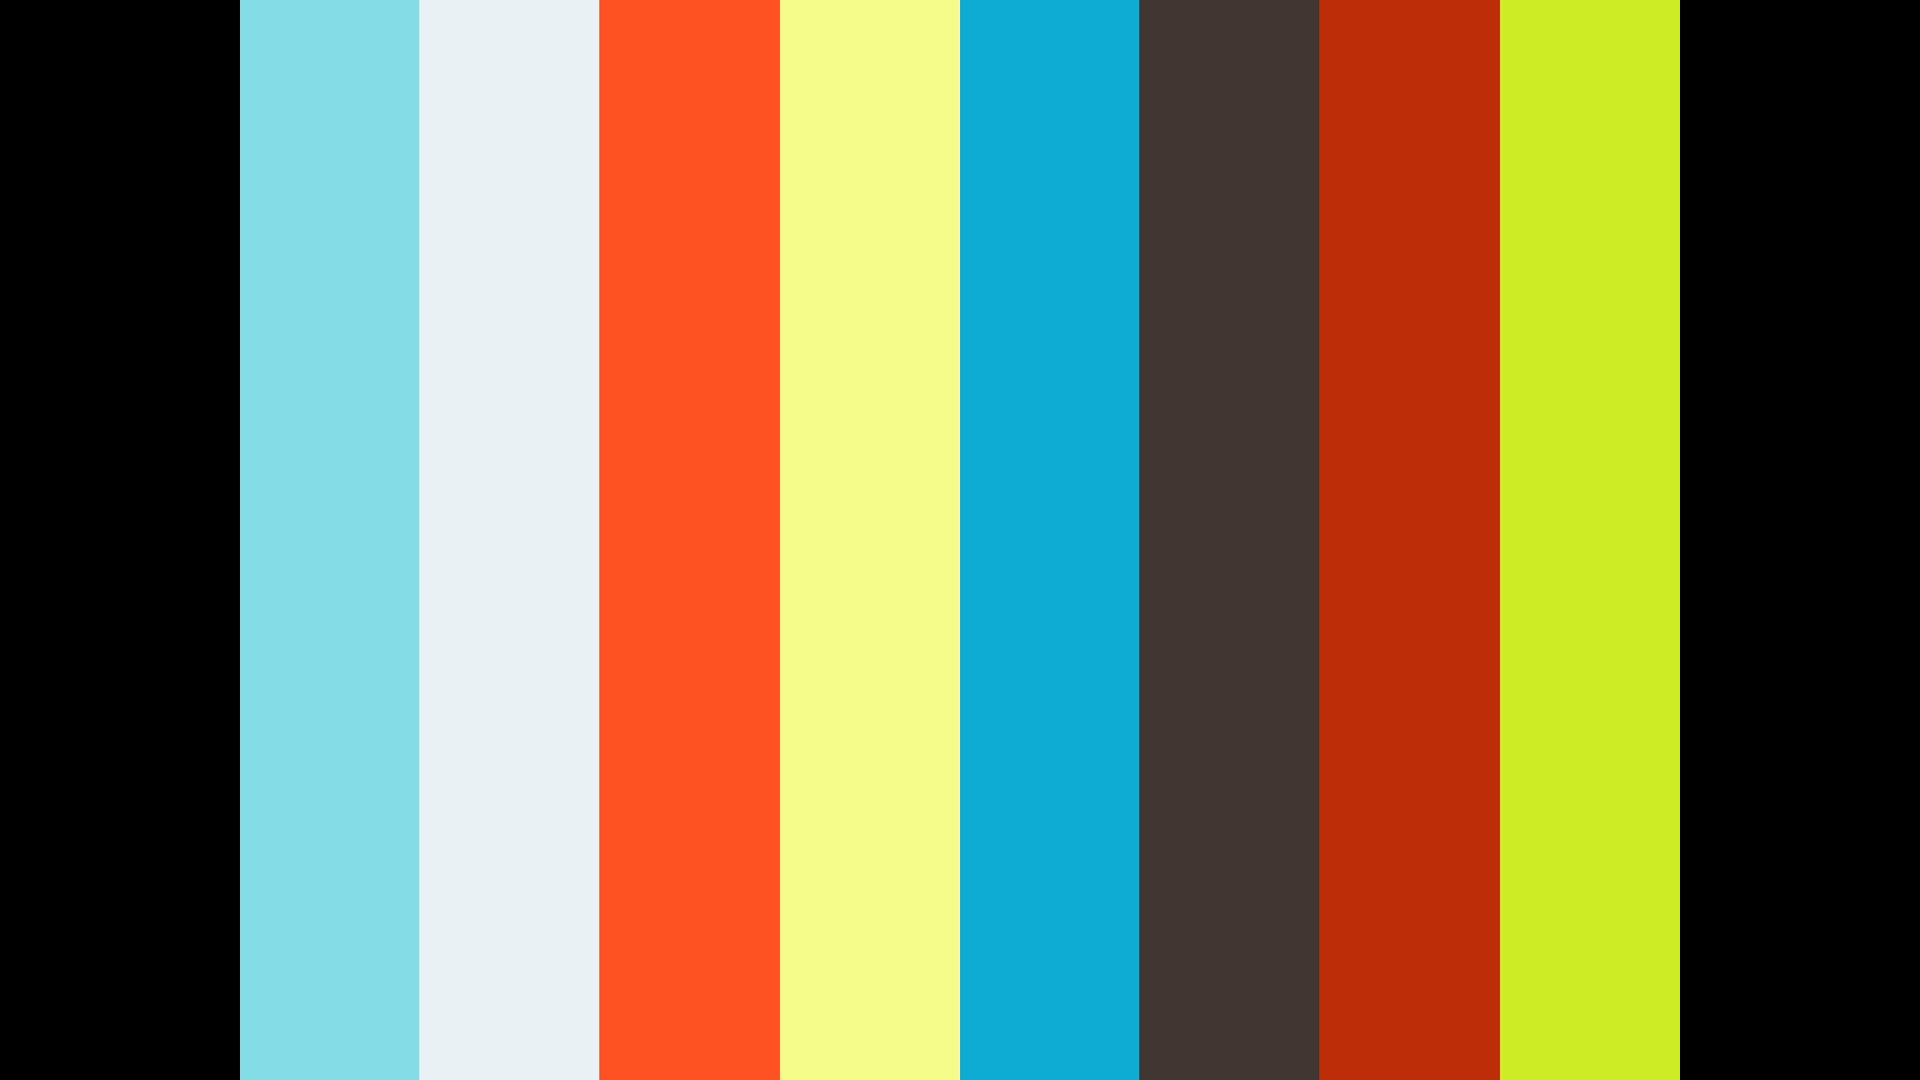 267 SE Washington Ave Chehalis WA | 98532